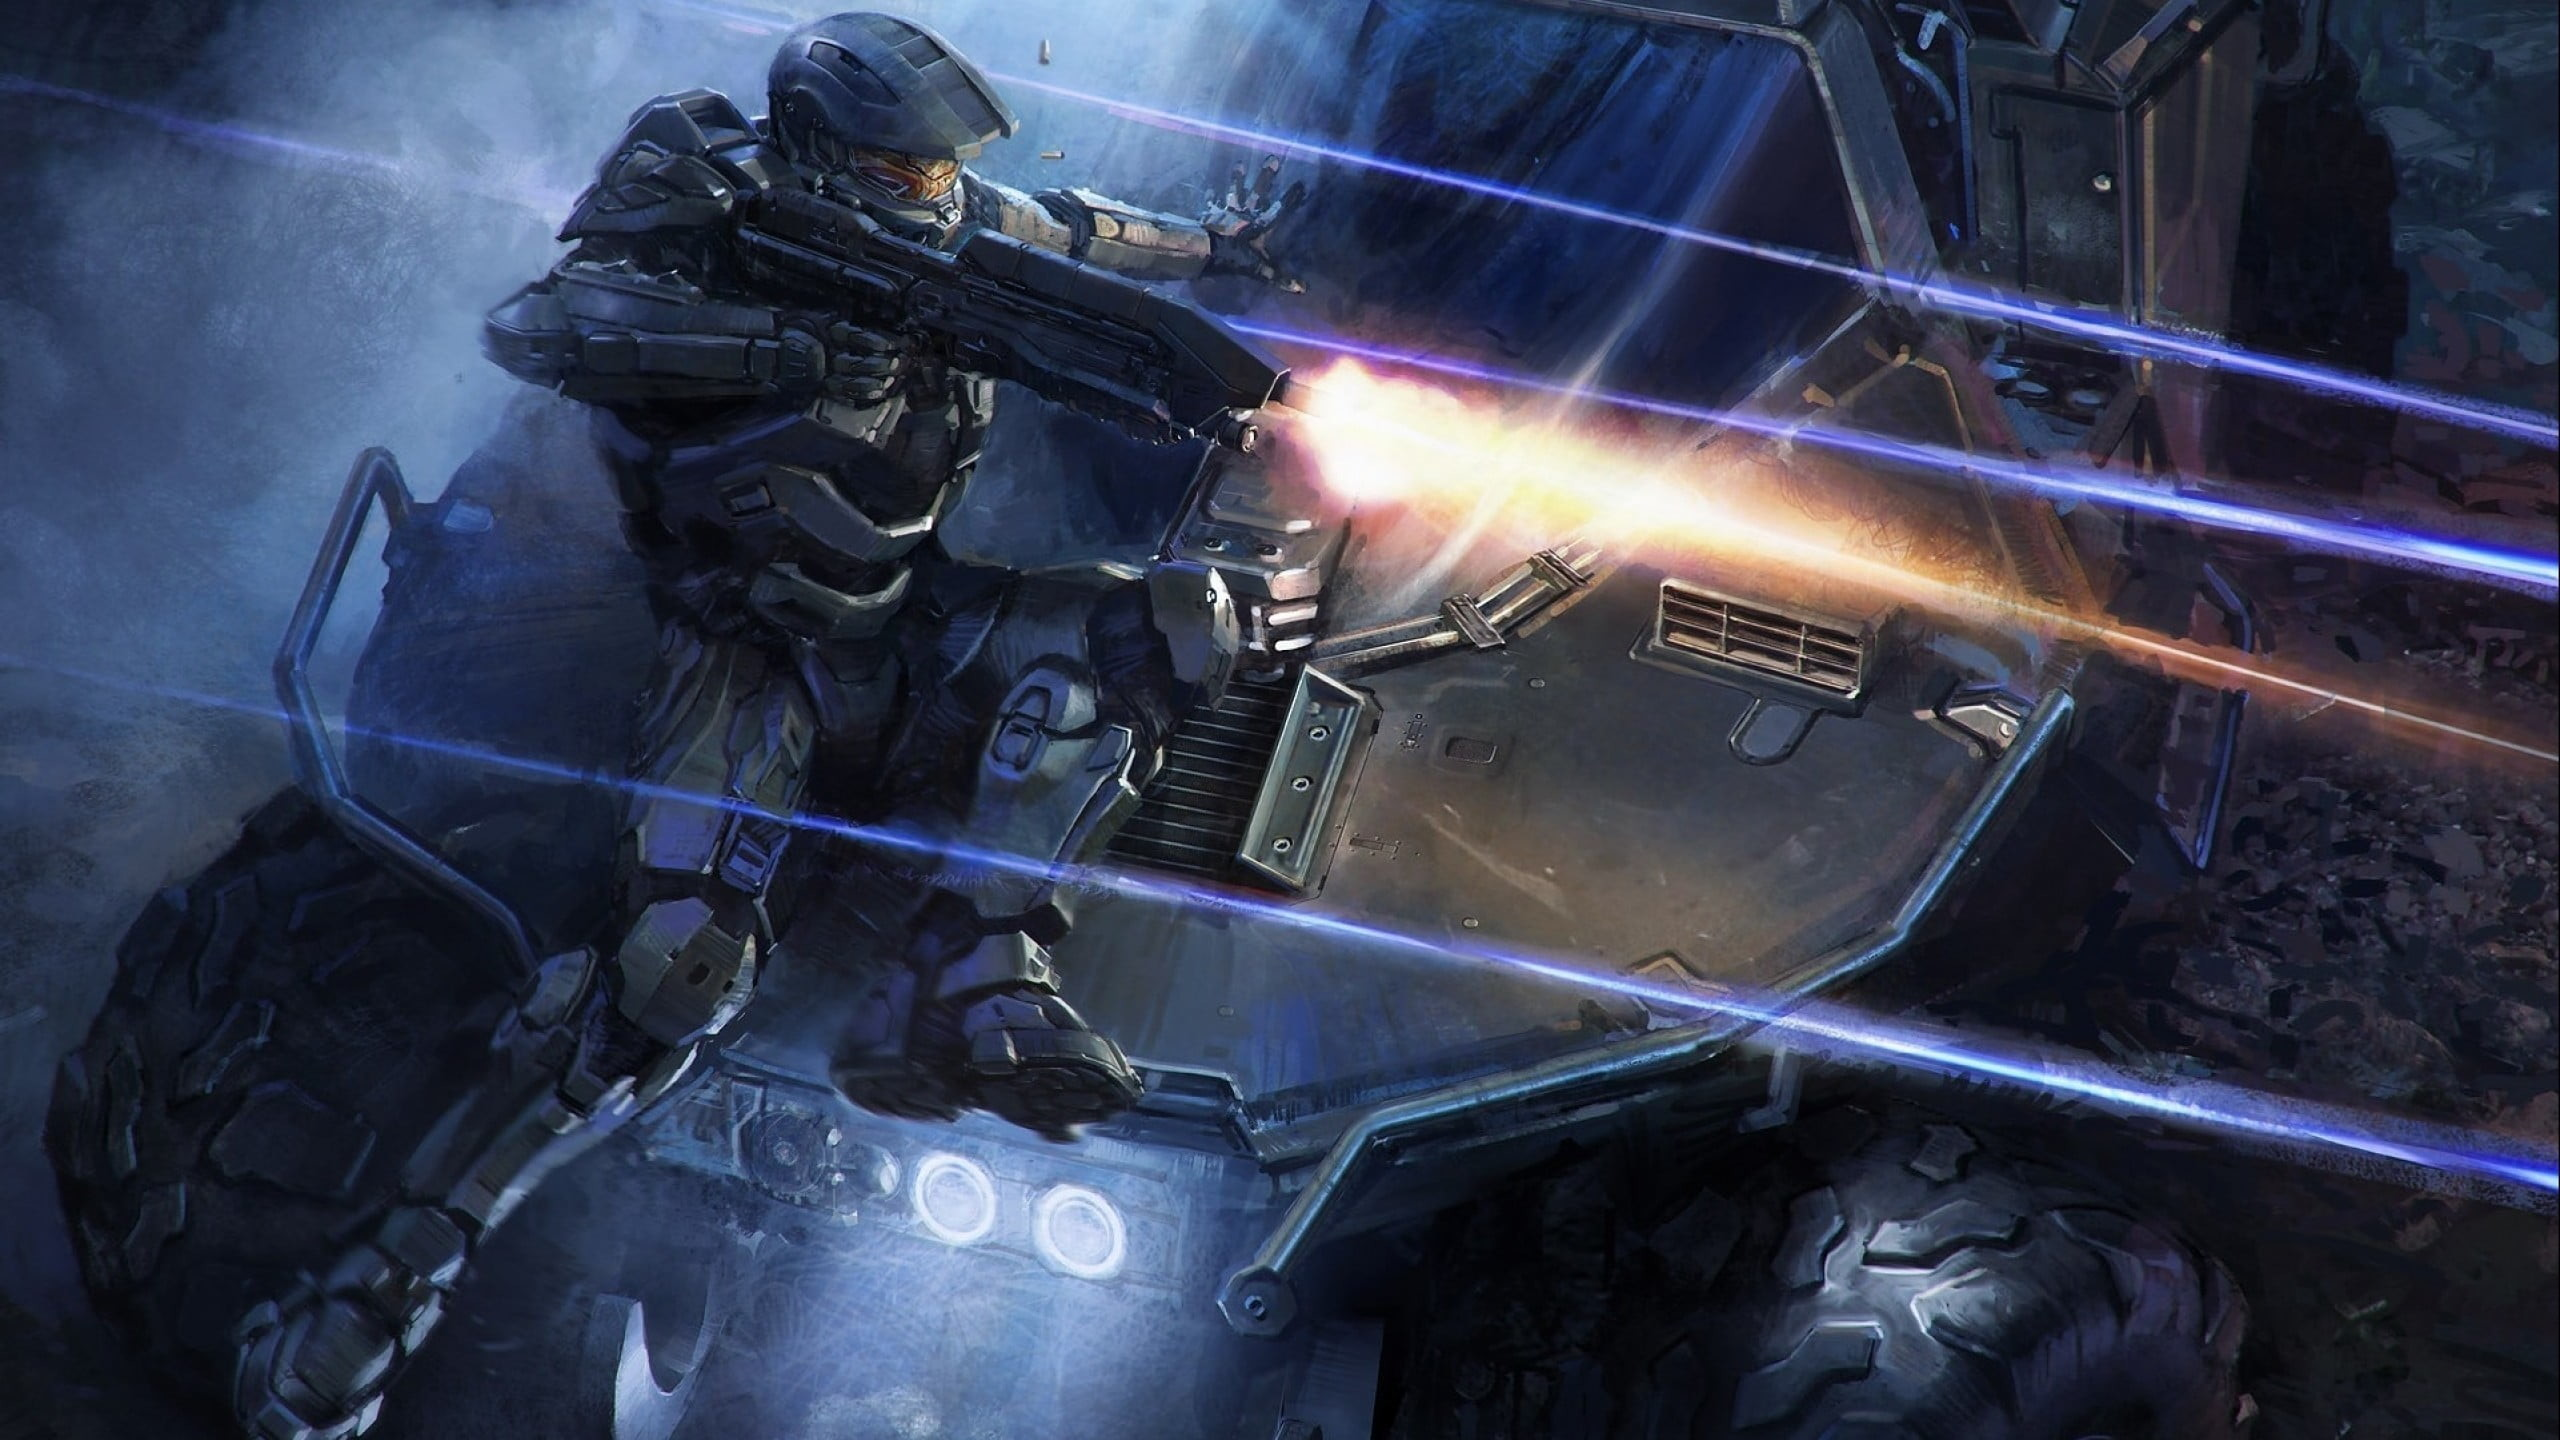 Halo 4 Wallpapers 2560x1440 72 Background Pictures